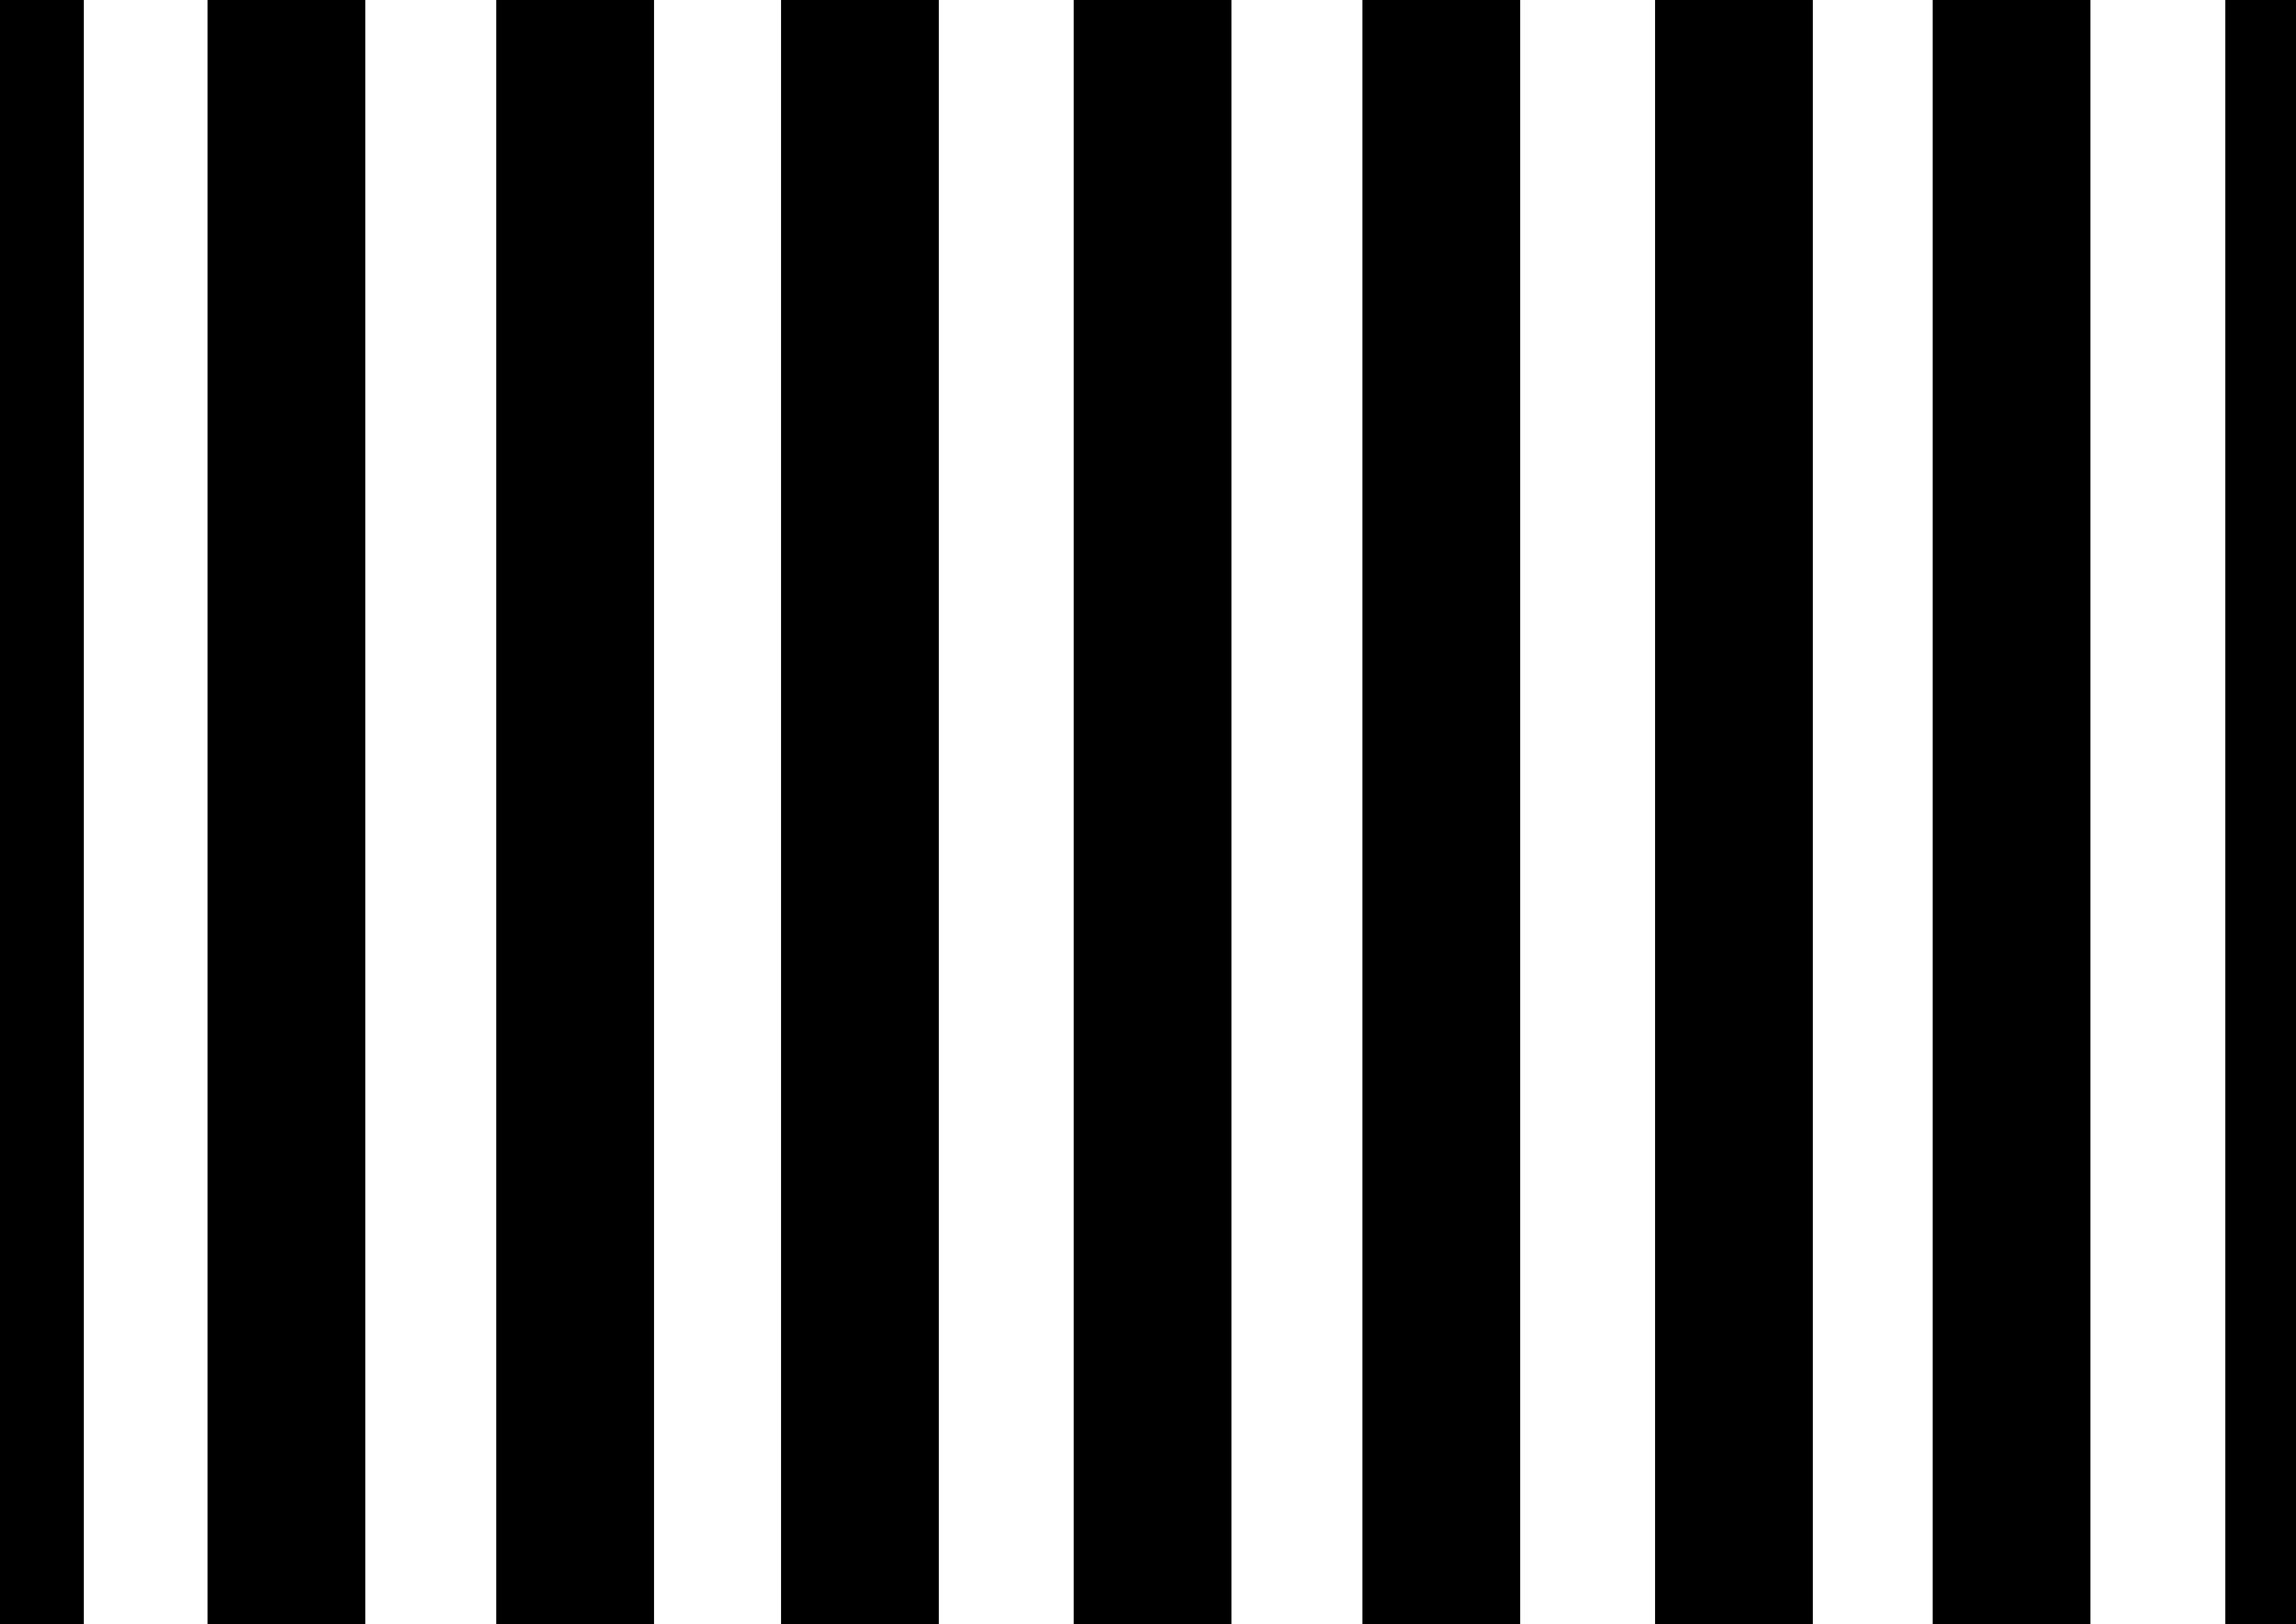 black-and-white-striped-wallpaper-72027112 - Jericho Chambers